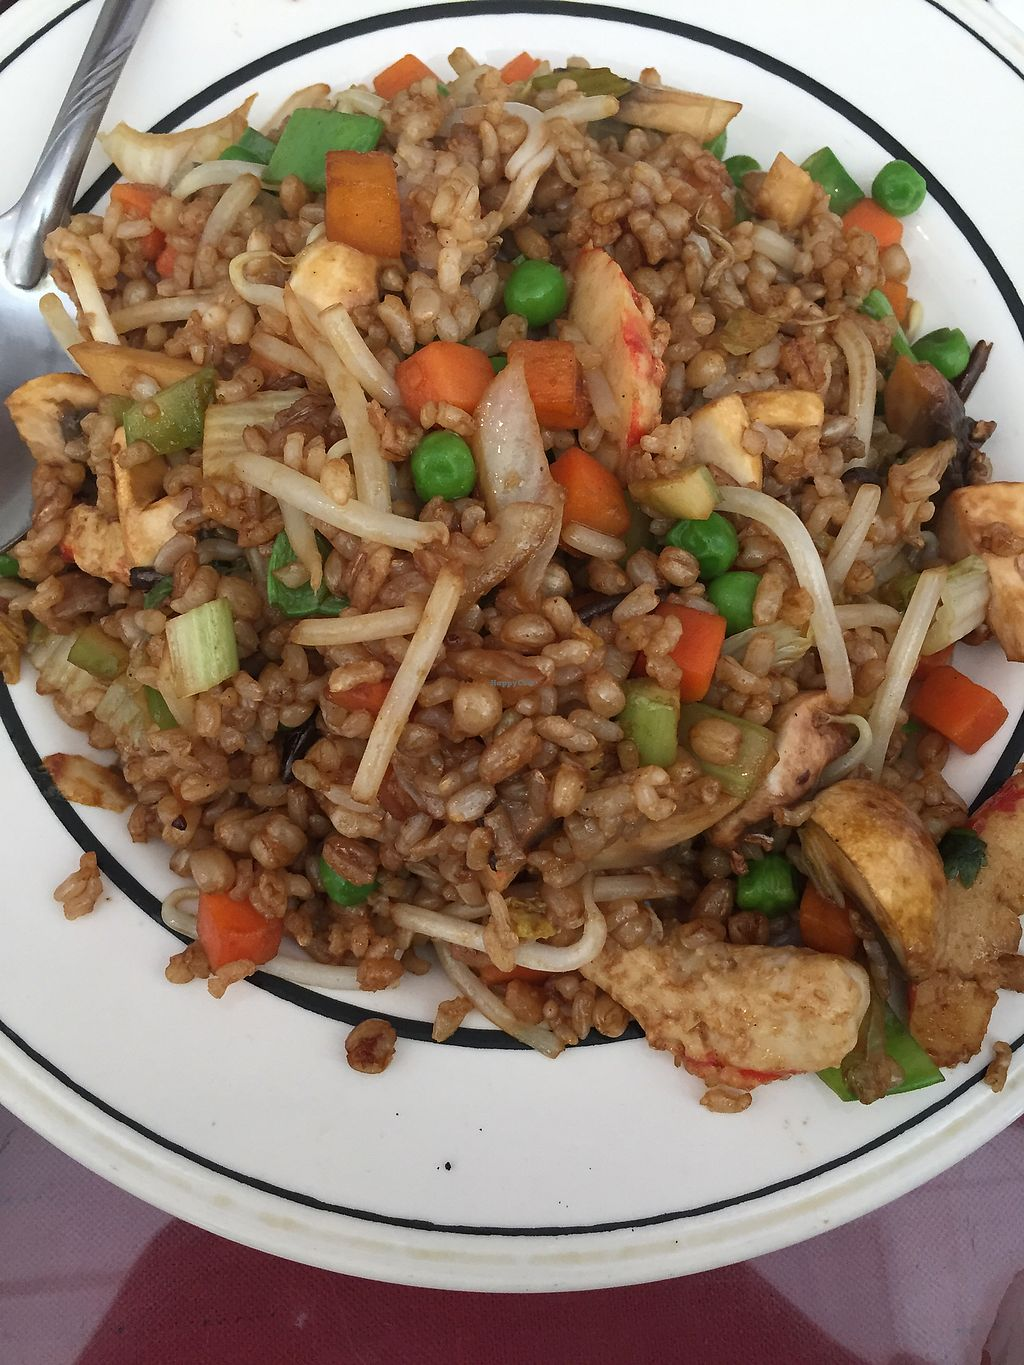 """Photo of Vegi Wokery  by <a href=""""/members/profile/R-MV"""">R-MV</a> <br/>Fried rice <br/> October 4, 2017  - <a href='/contact/abuse/image/1612/311815'>Report</a>"""